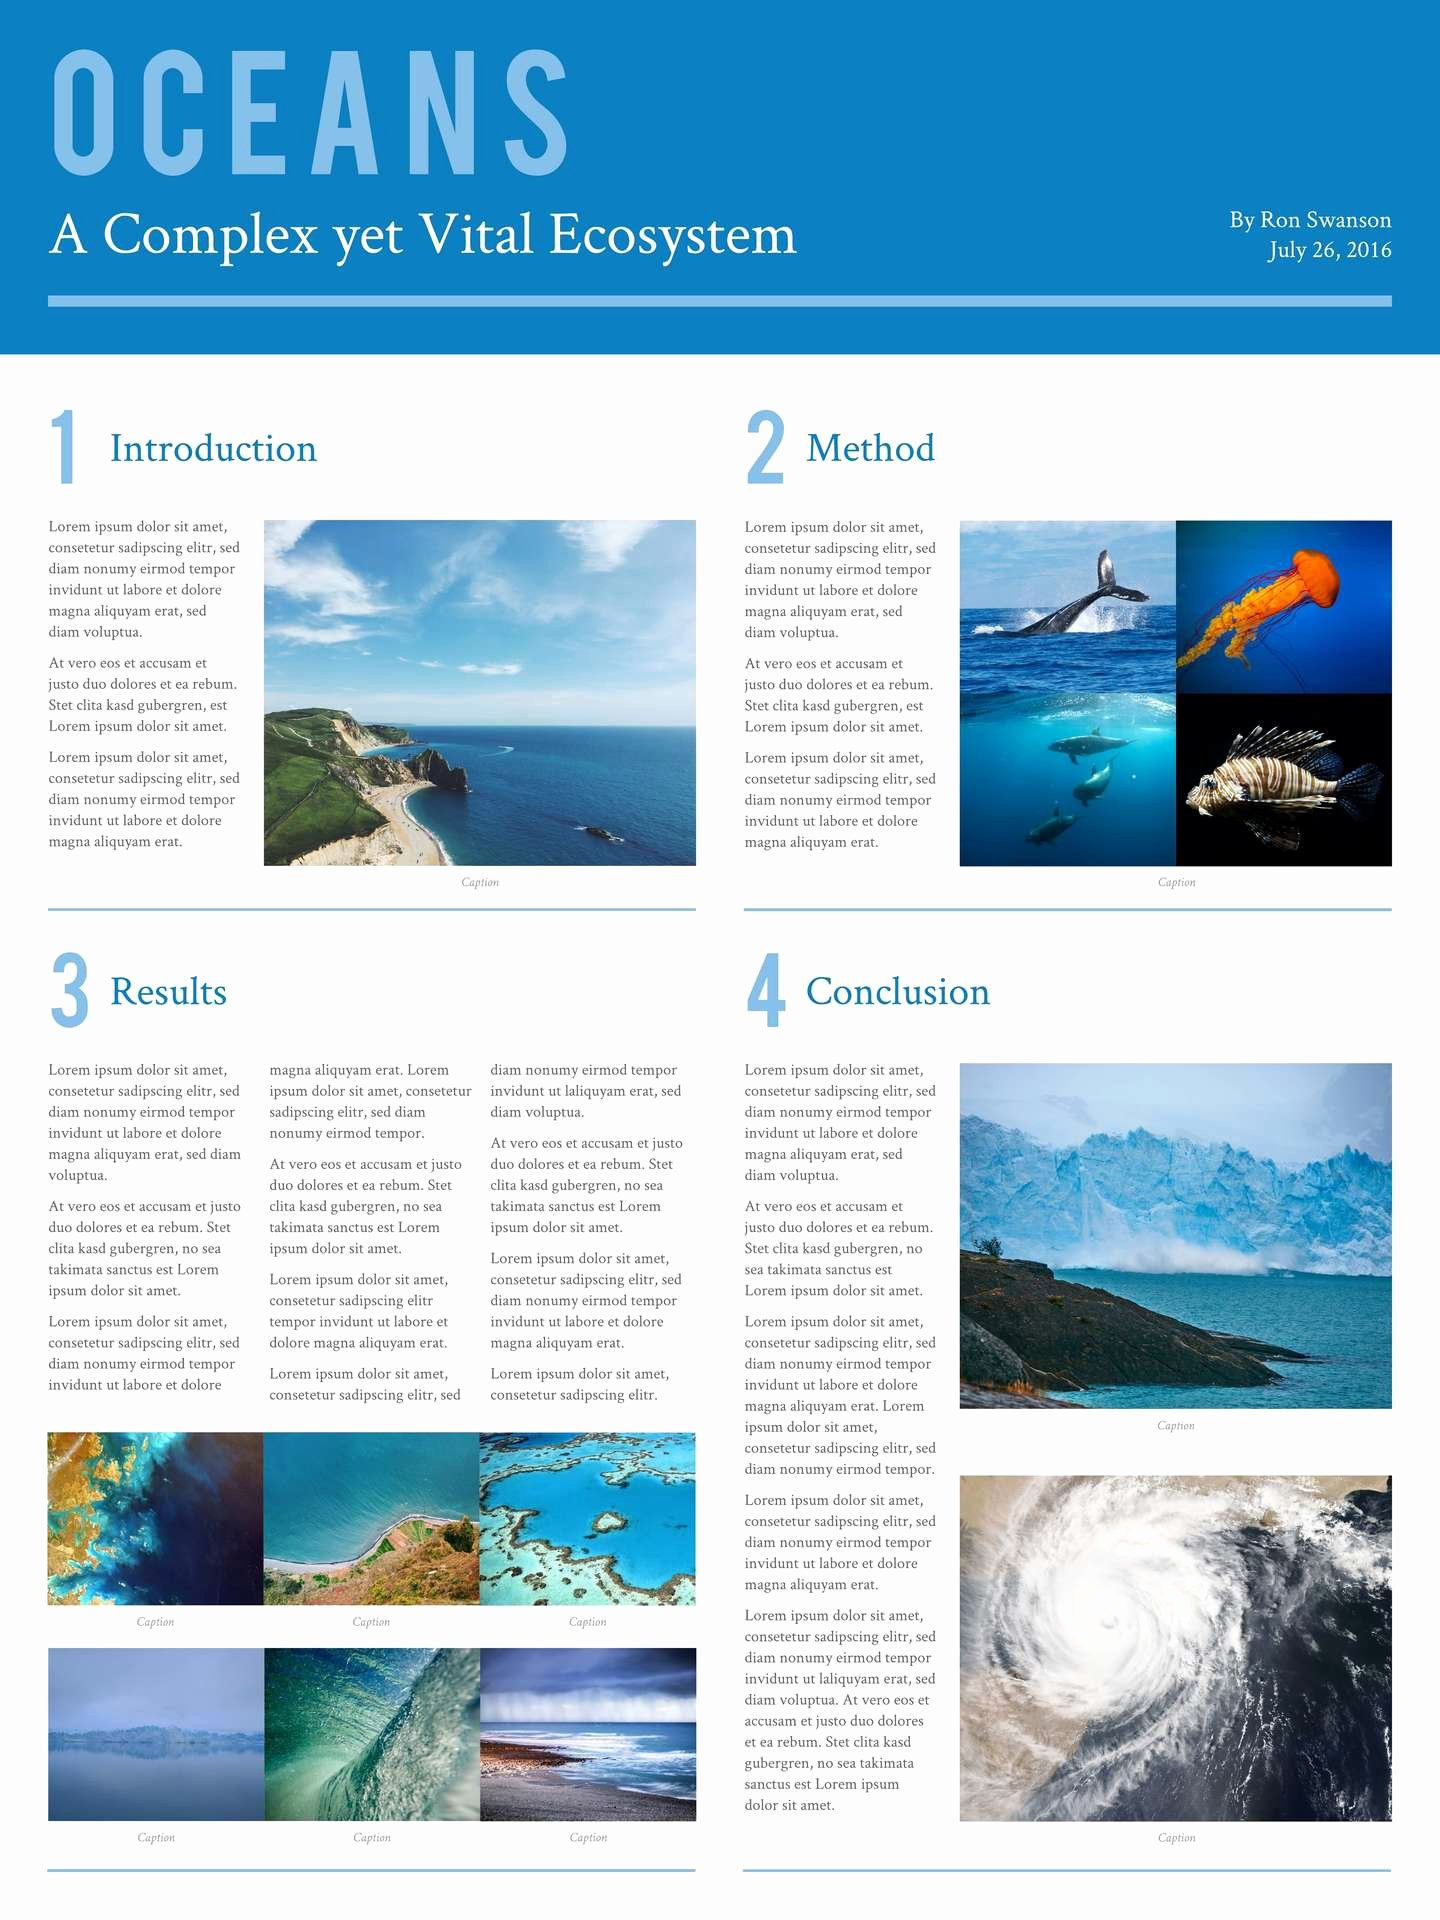 Research Project Poster Template Beautiful Free Science & Research Poster Templates & Examples